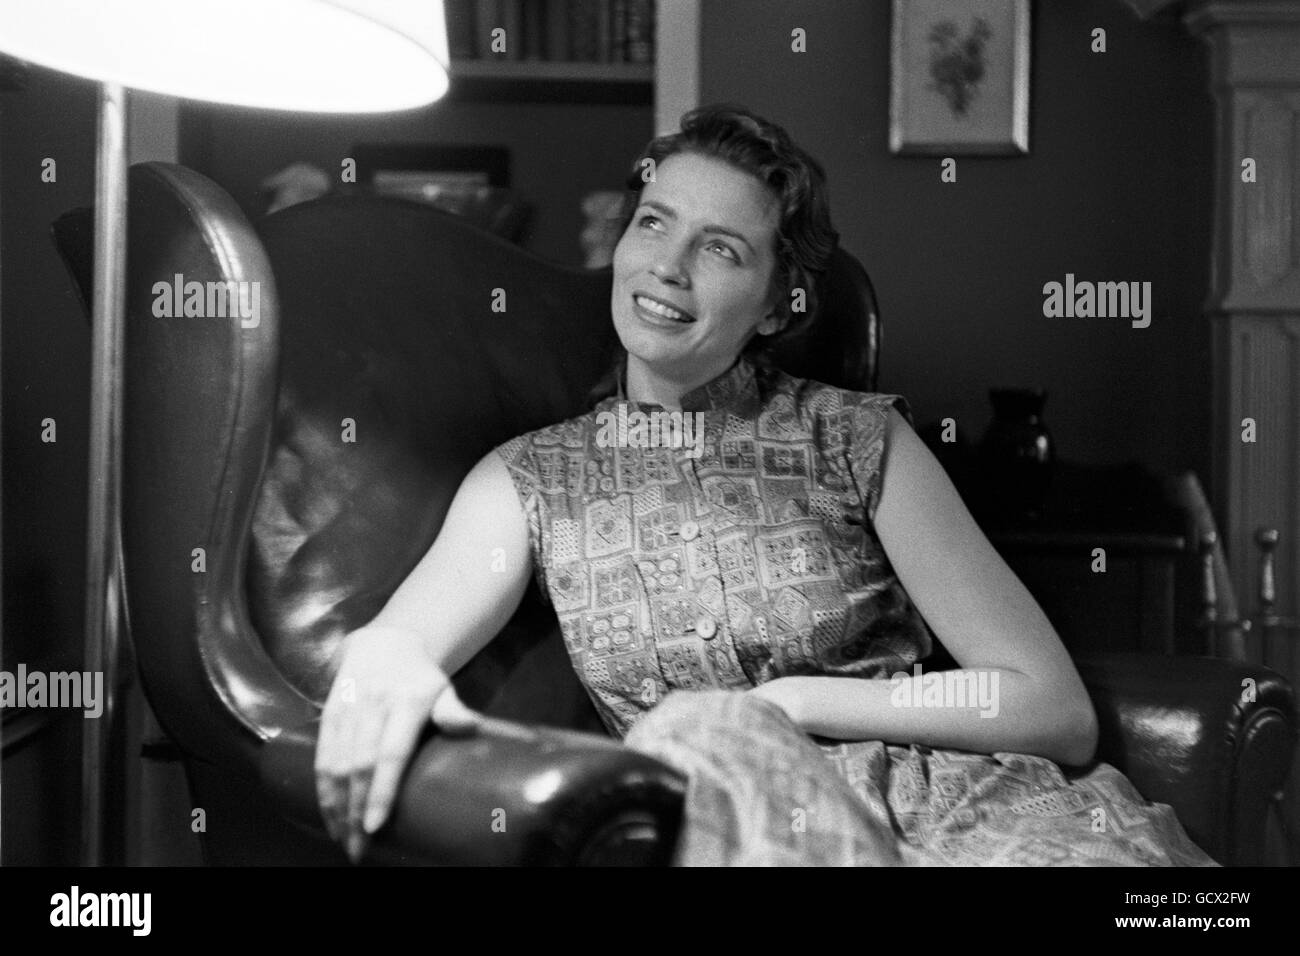 June Carter, photographed at home in 1956. The location is somewhat uncertain, but is most likely Madison Tennessee. - Stock Image